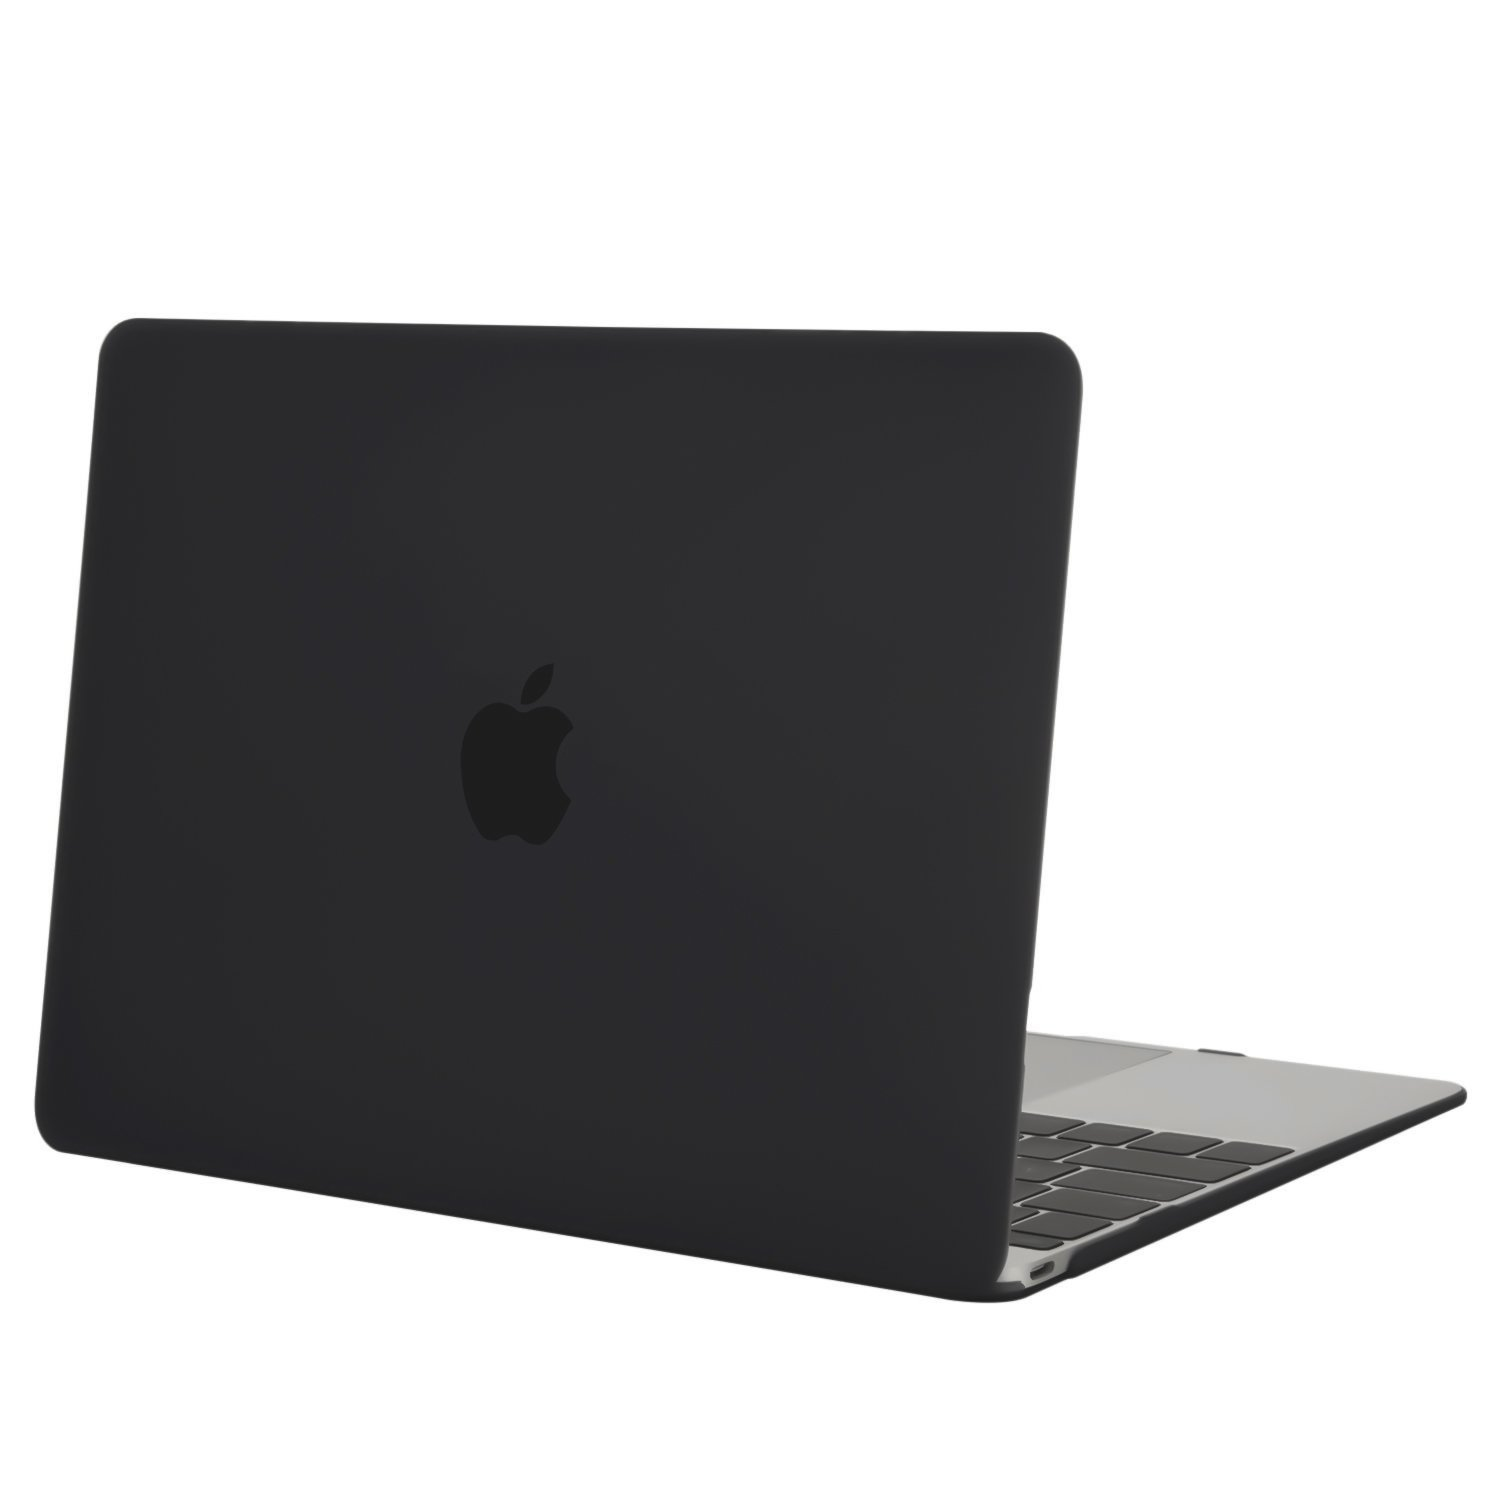 MOSISO Plastic Hard Shell Case Cover Compatible MacBook 12 Inch with Retina Display Model A1534 (Version 2017/2016/2015), Black